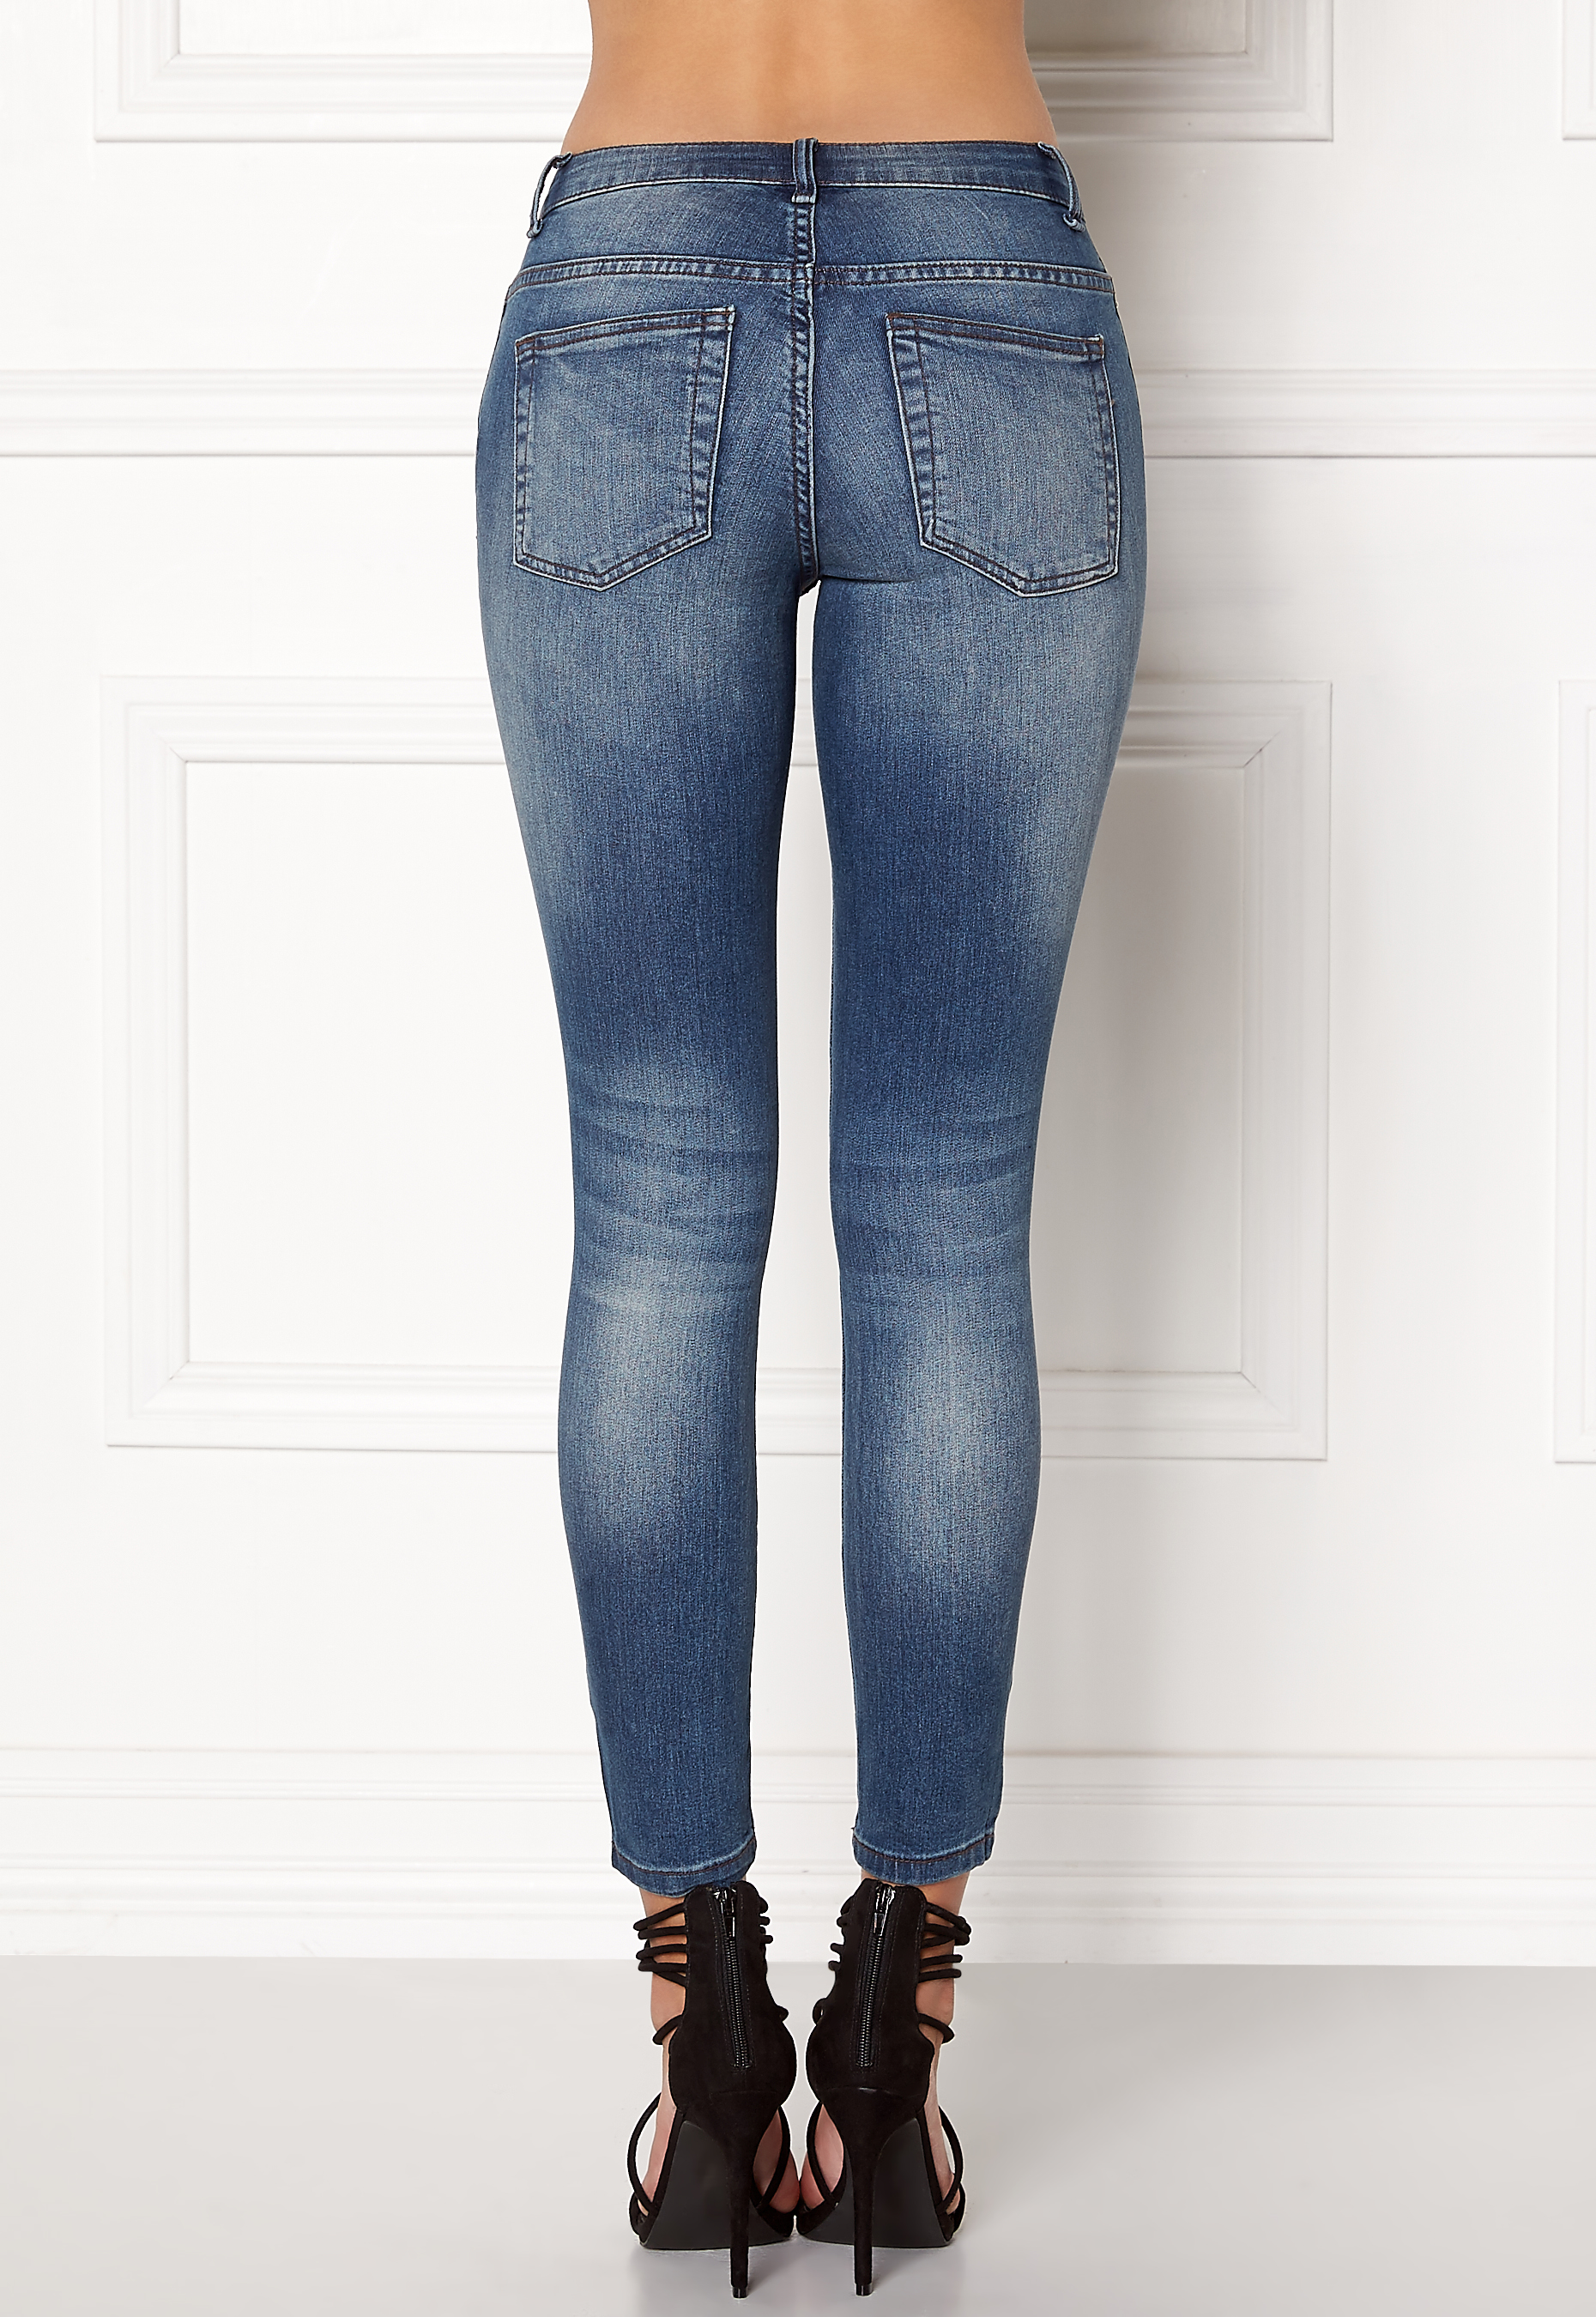 Mid Rise Skinny Jeans - Blue Jacqueline de Yong Browse Looking For The Cheapest For Sale Cheap Real jGsE5LuiSR